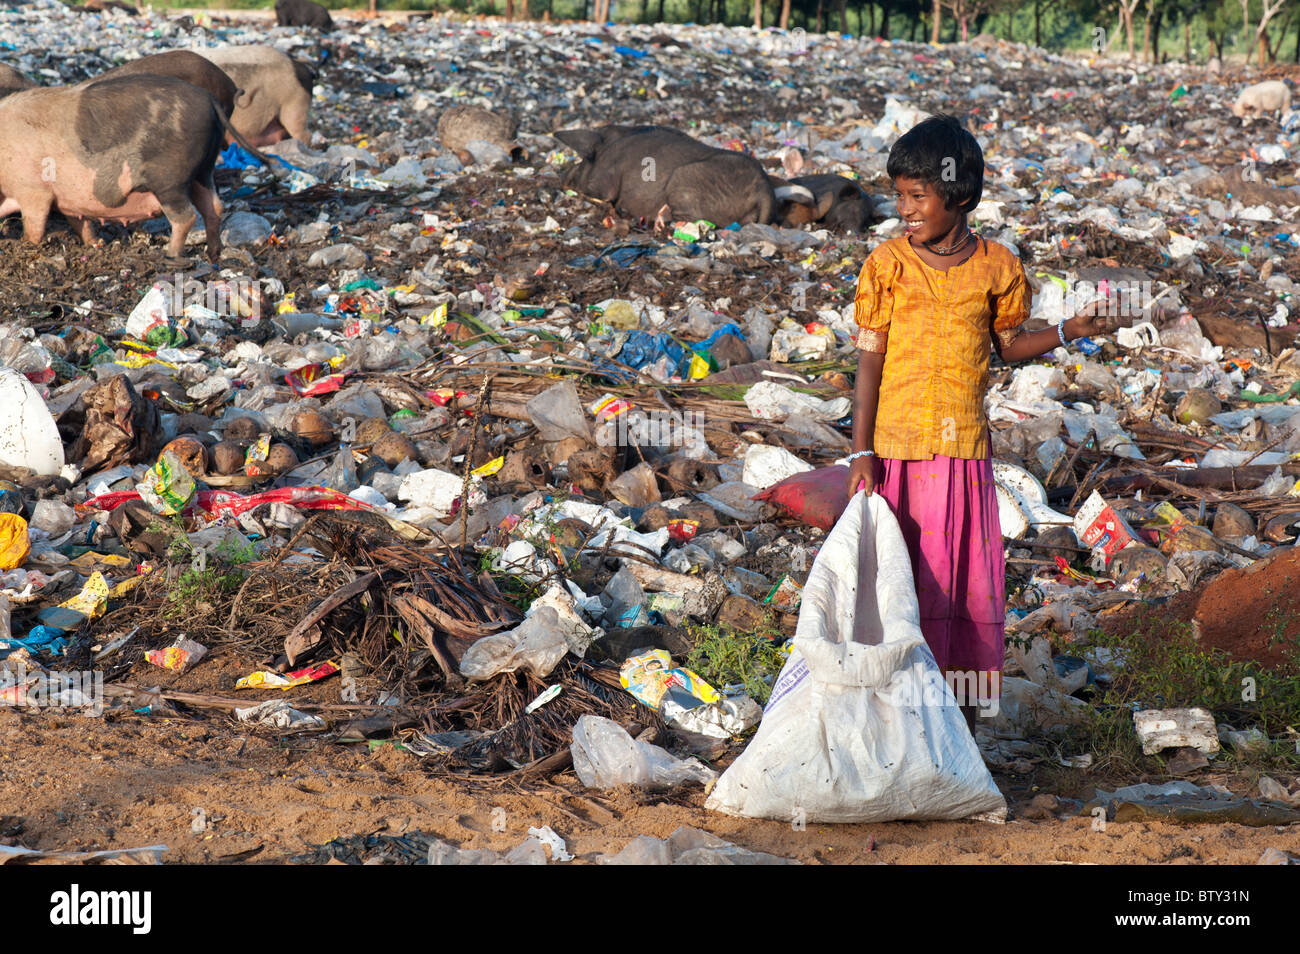 Poor Indian girl with a sack picking through an open rubbish tip surrounded by plastic bags and pigs. Andhra Pradesh, - Stock Image